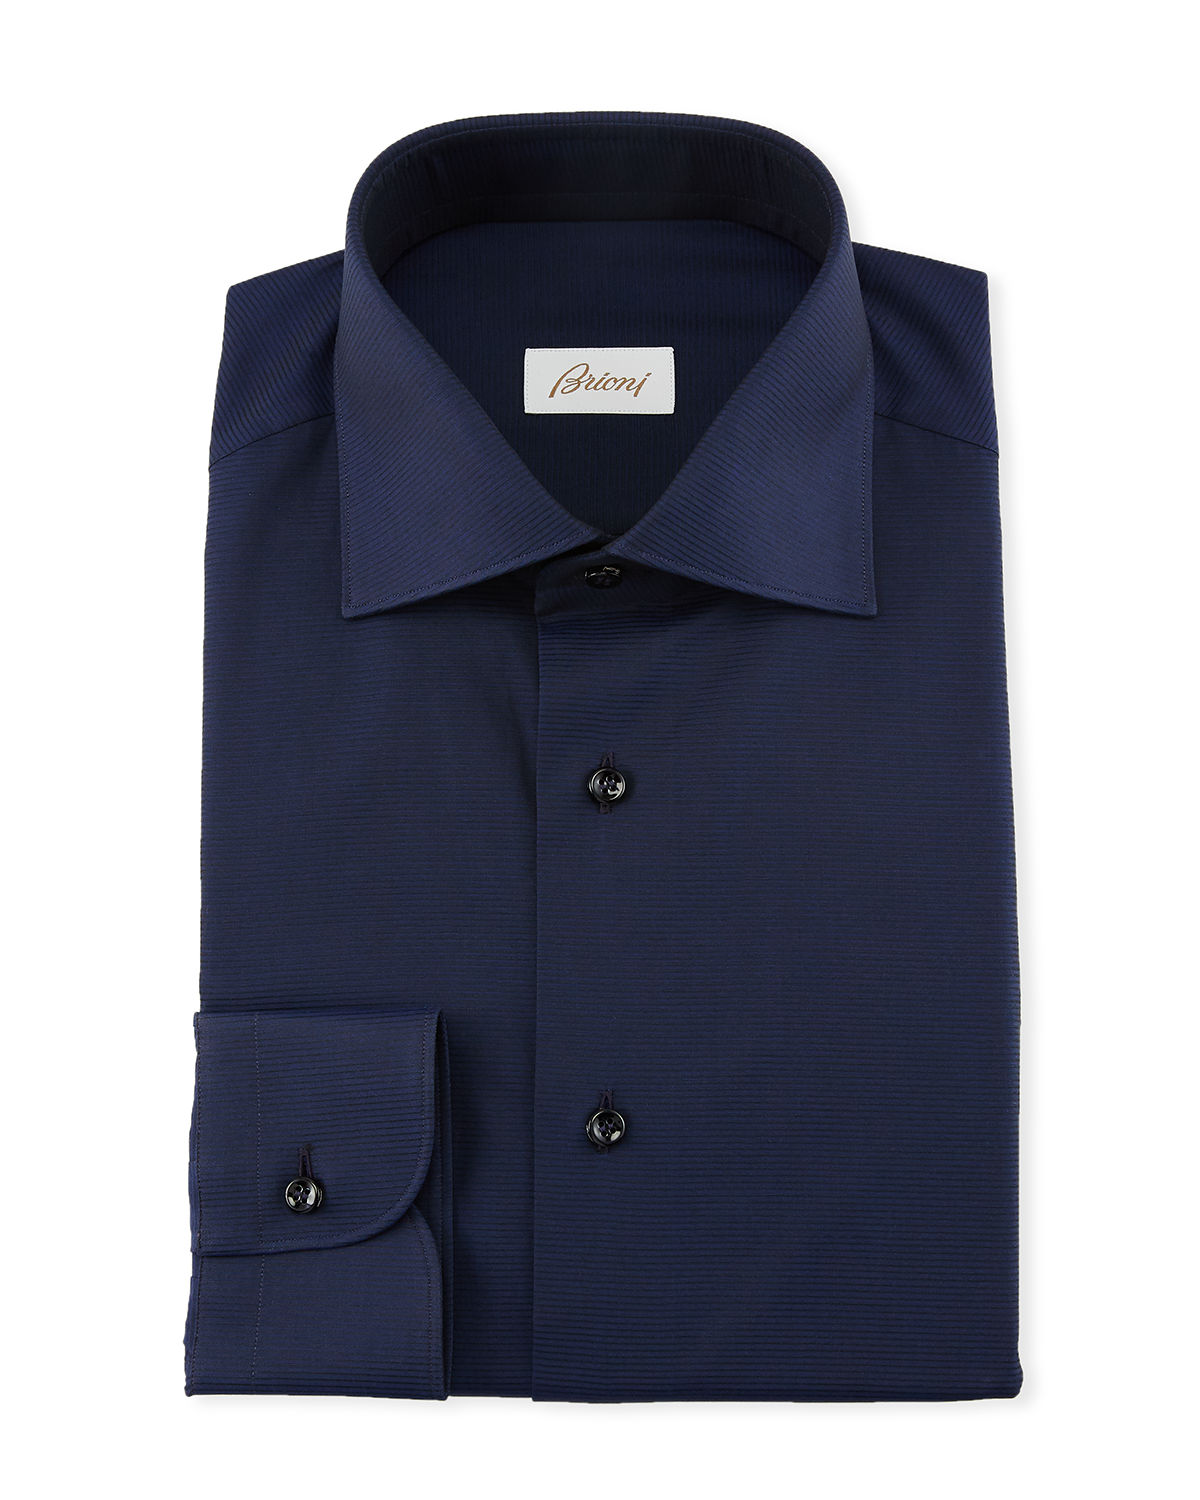 Brioni Mens Textured Solid Dress Shirt Neiman Marcus